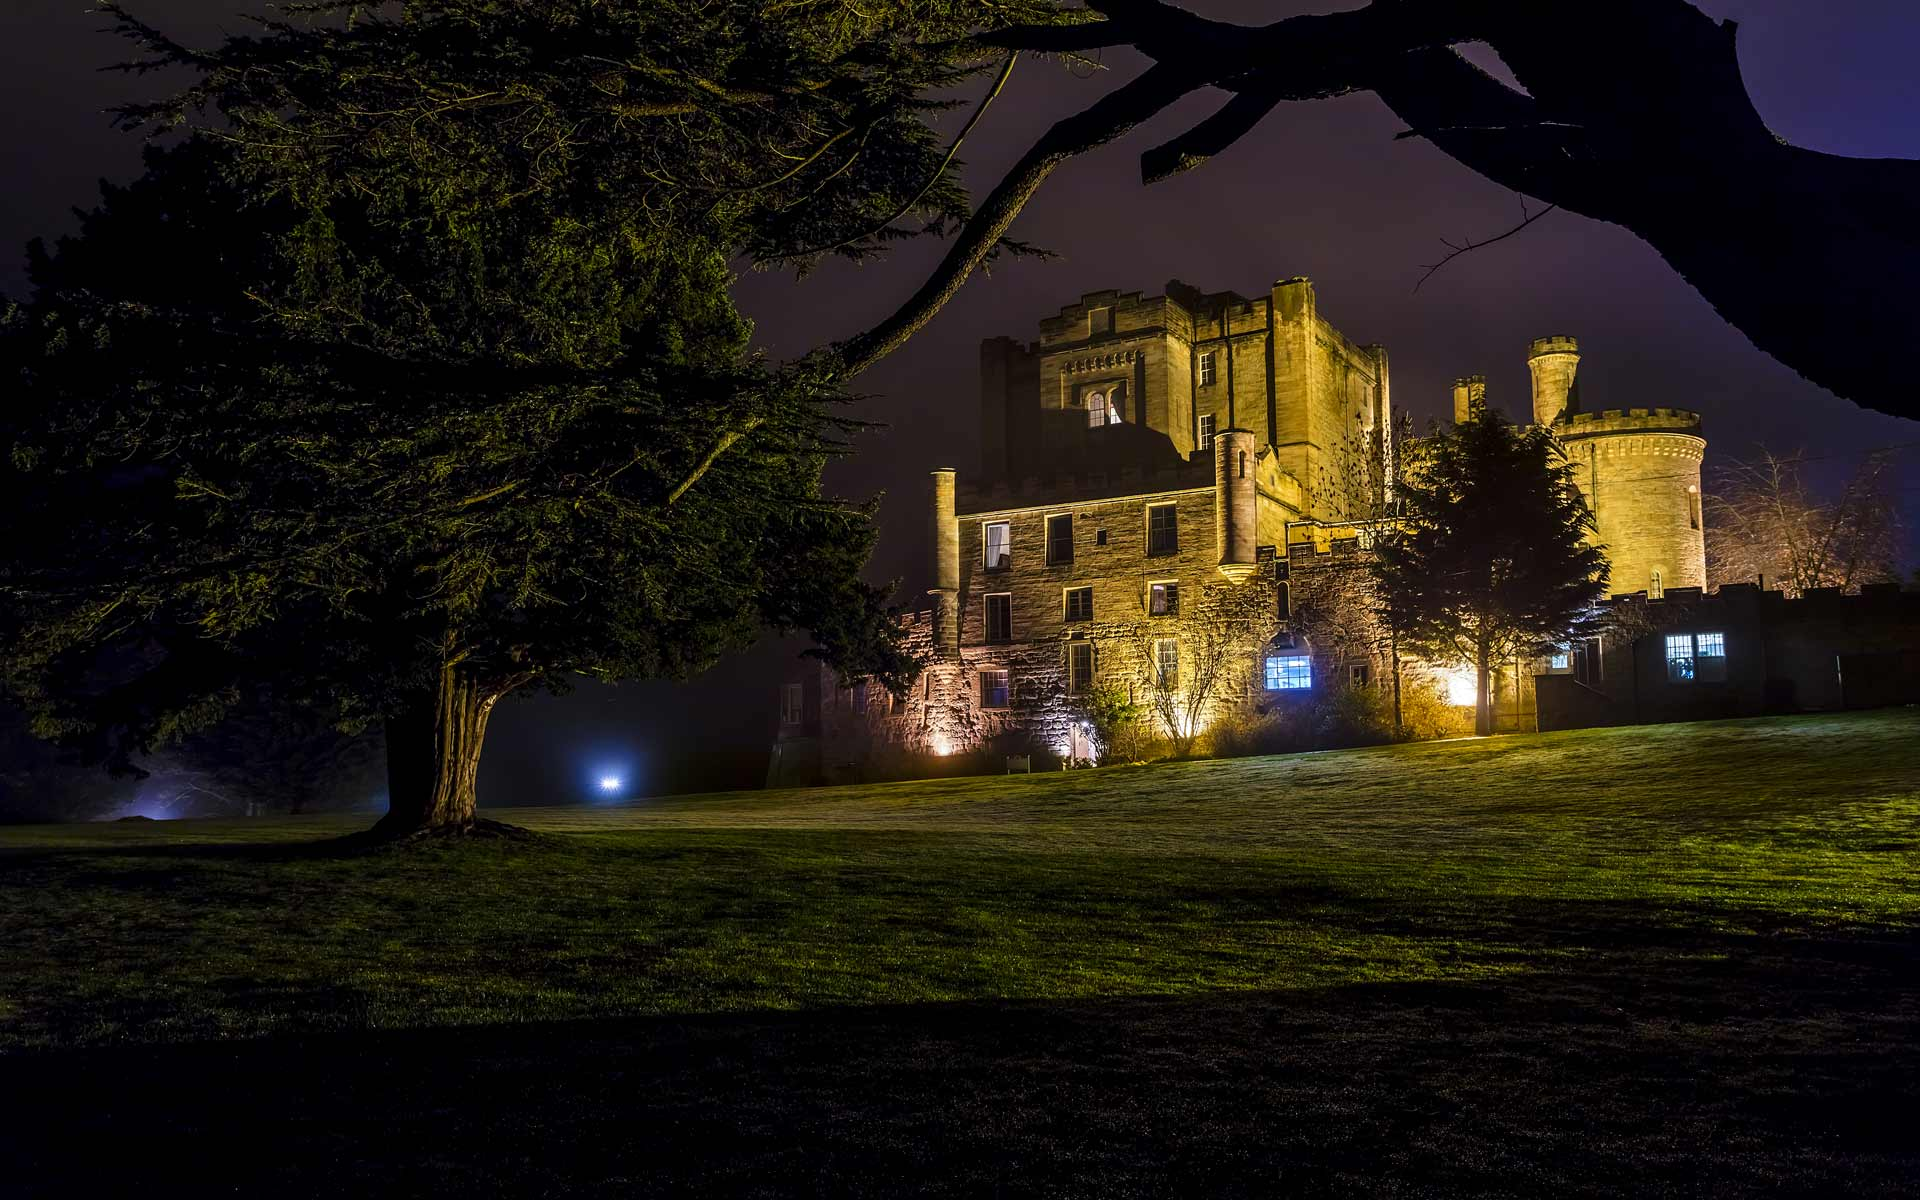 THE DALHOUSIE CASTLE HOTEL AND AQUEOUS SPA